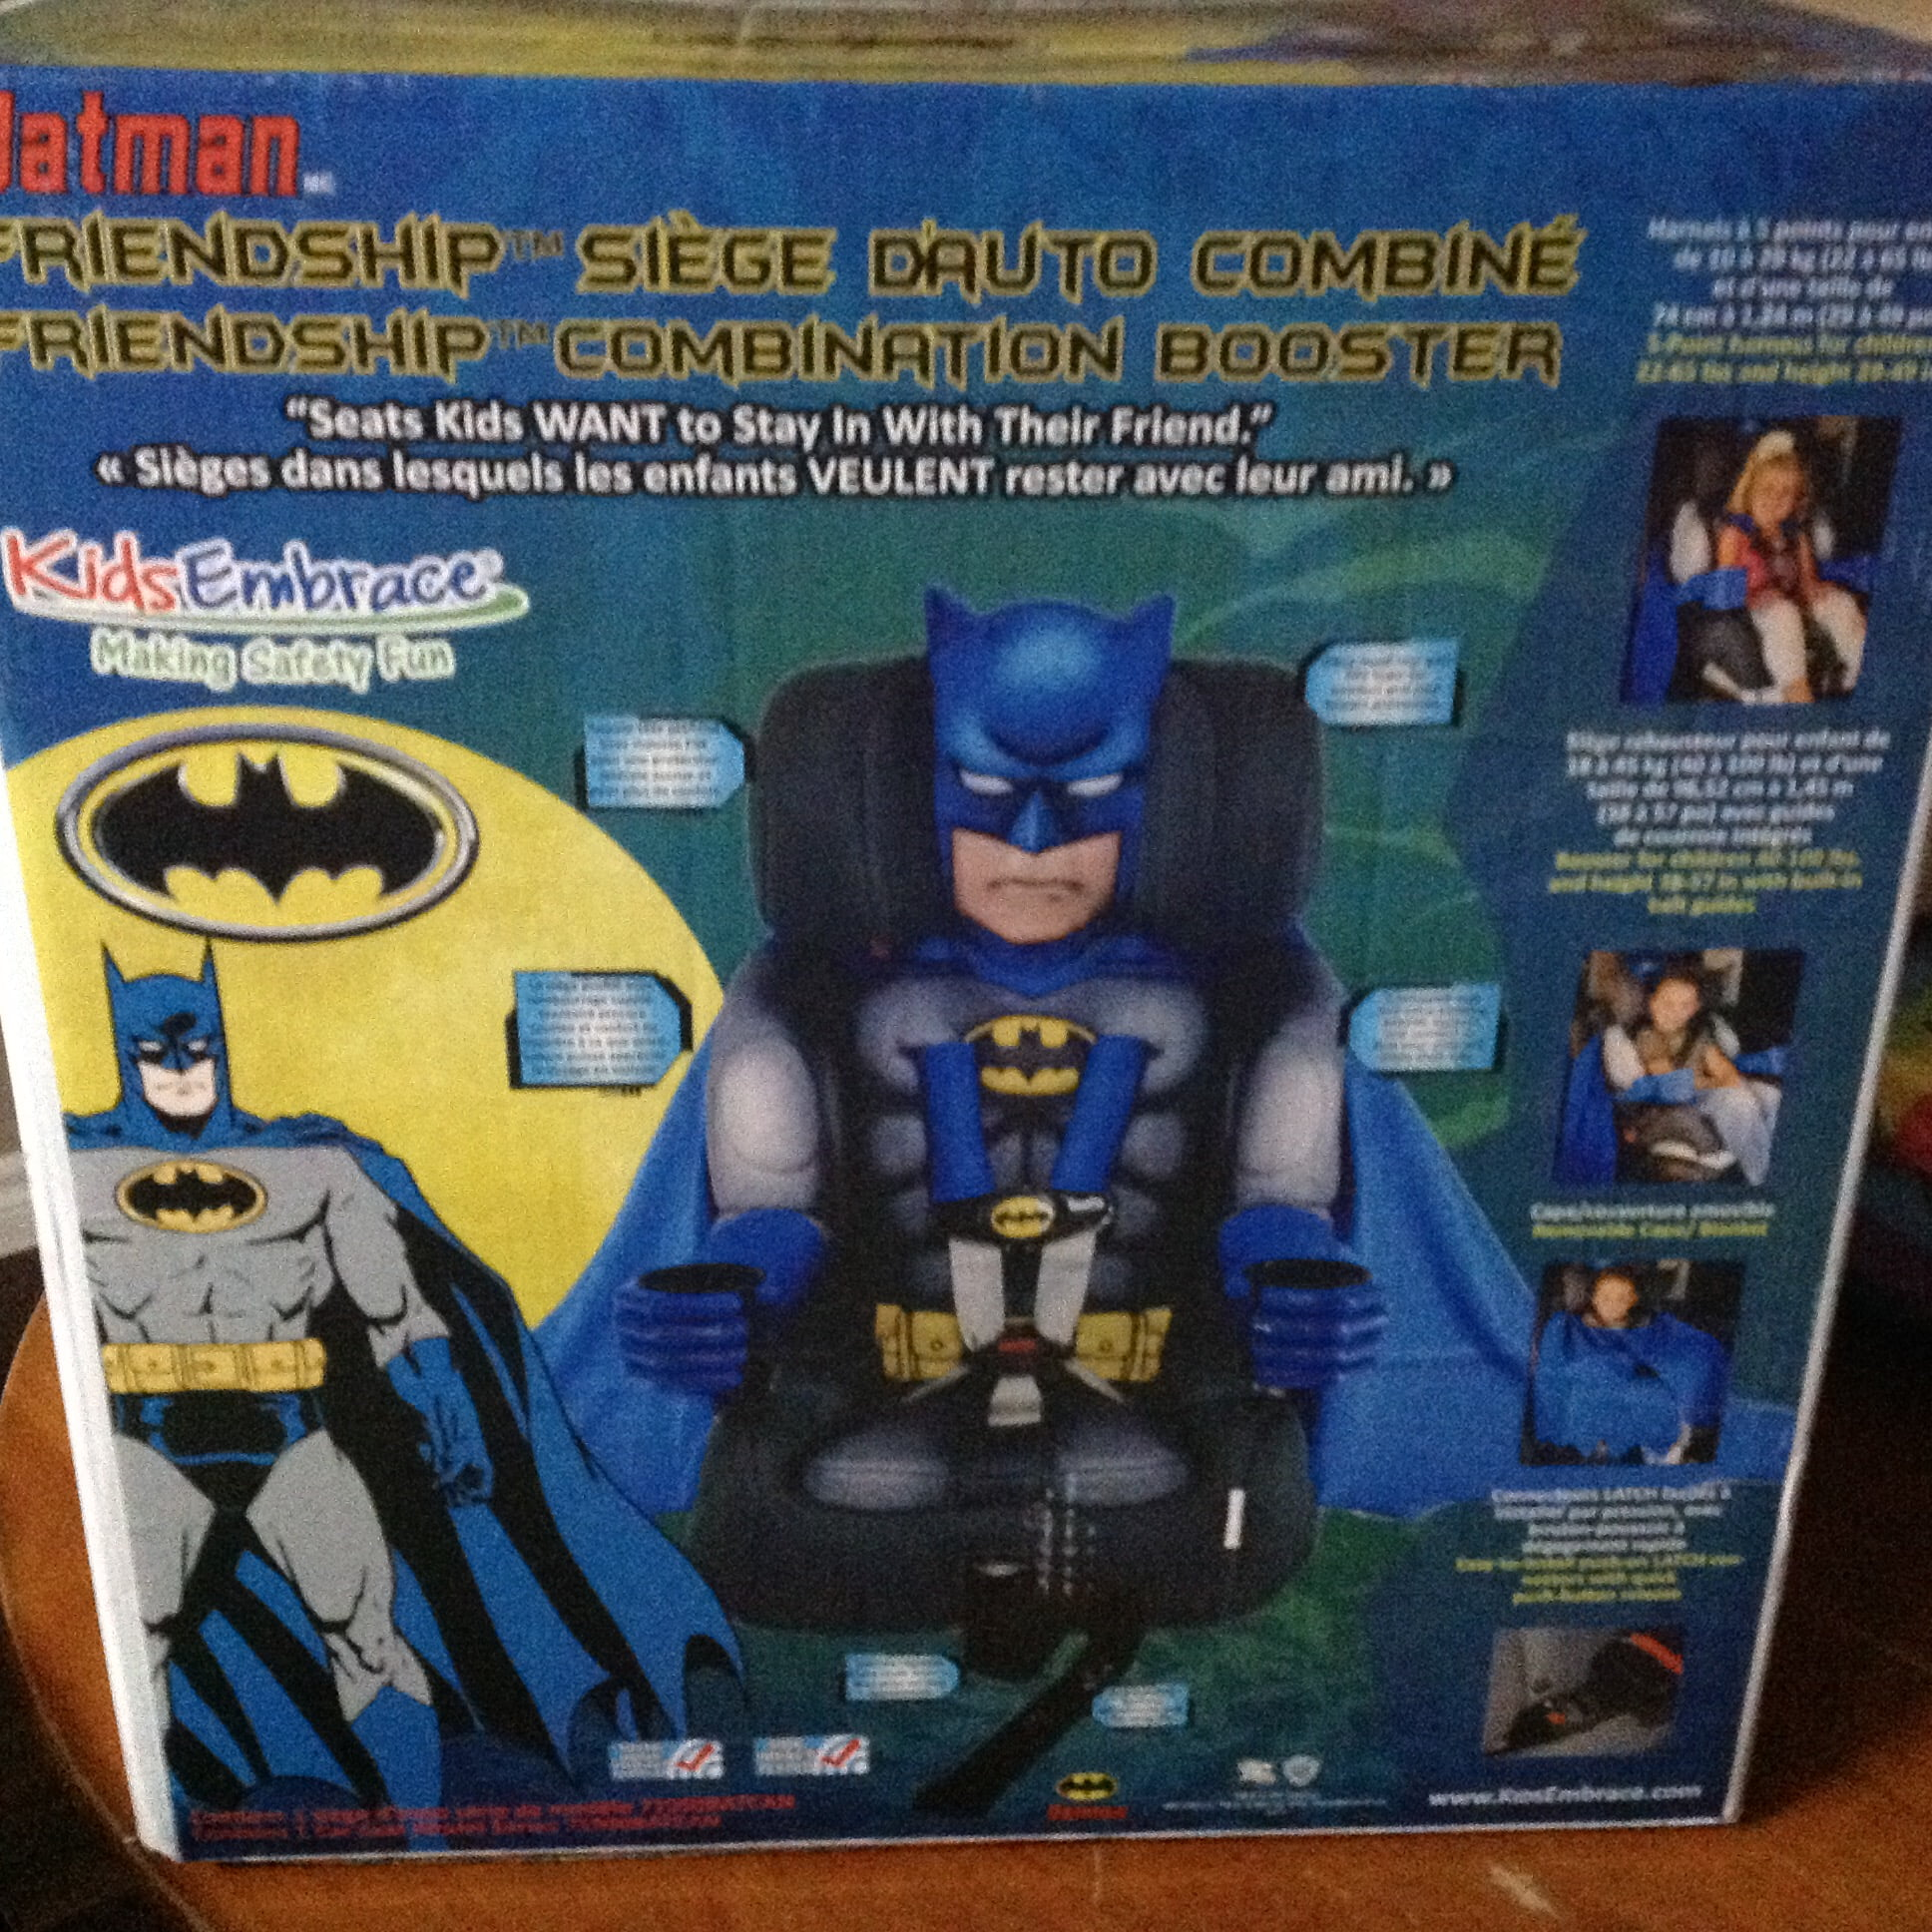 Fantastic Kidsembrace Combination Harnessed Booster Review London Car Batman Car Seat Replacement Parts Batman Car Seat Covers baby Batman Car Seat